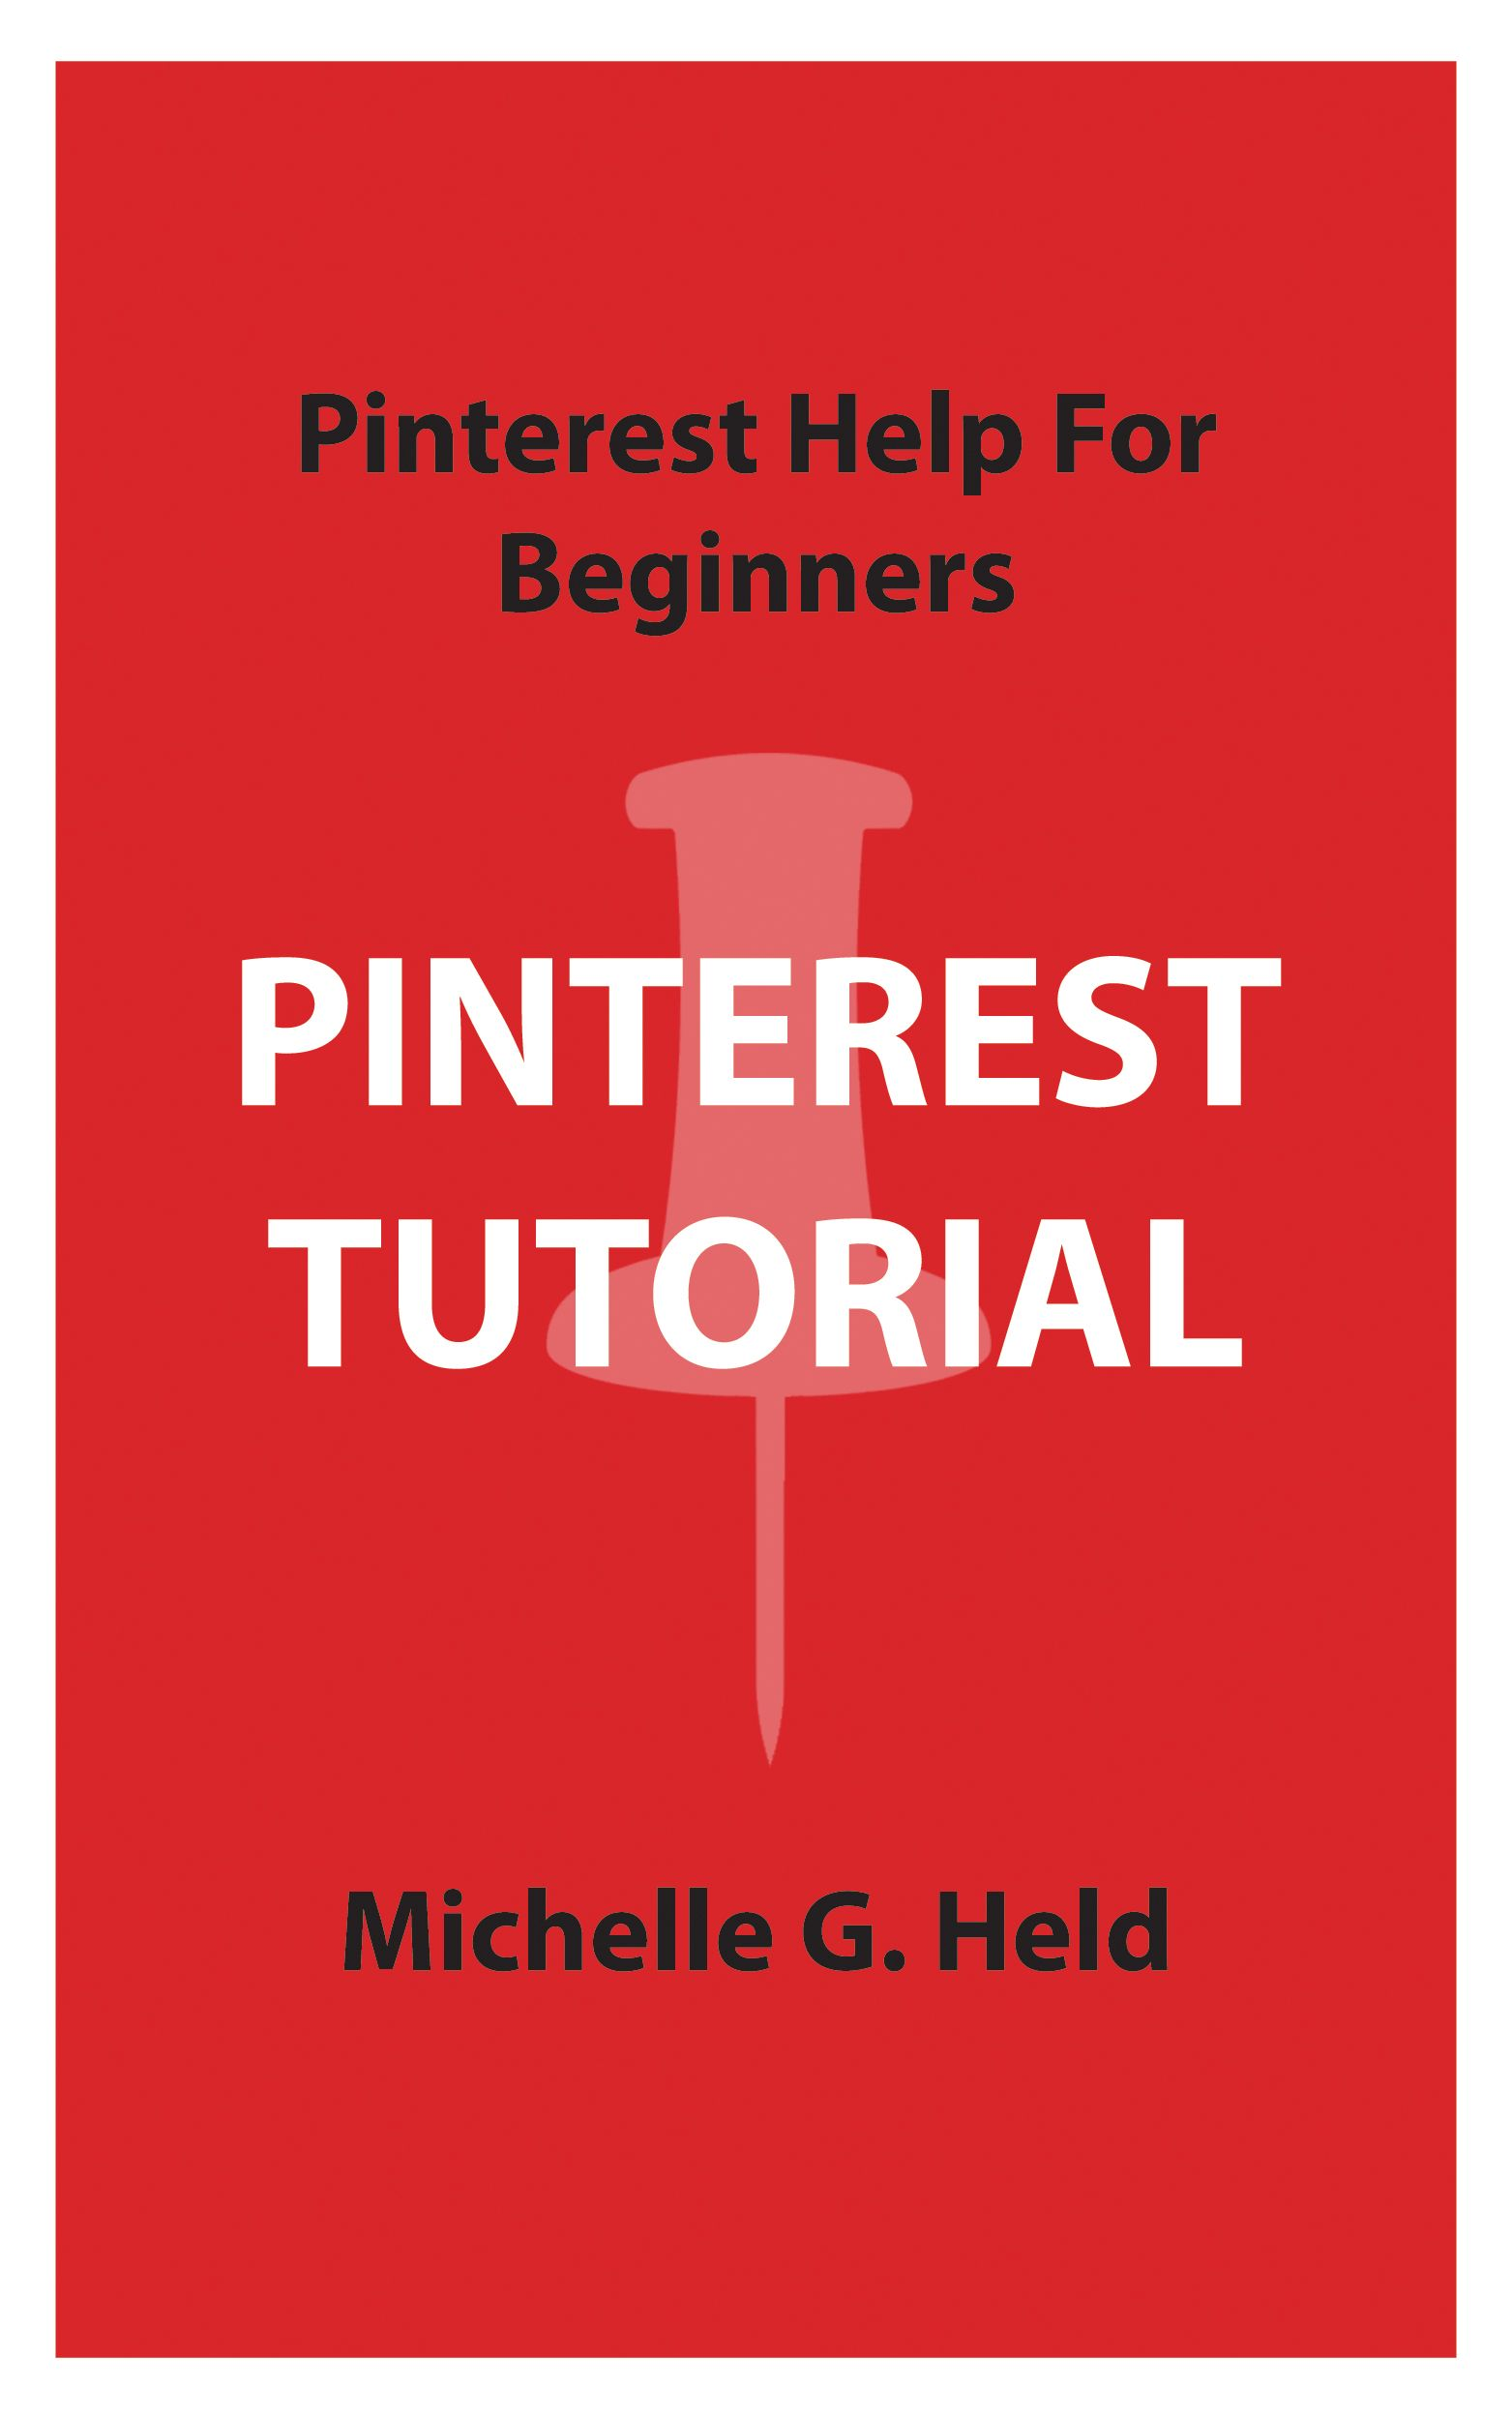 Pinterest Tutorial Book  PinTalk net is part of Pinterest tutorial - Pinterest Tutorial Book  This factfilled book is full of stepbystep instructions on everything for Pinterest